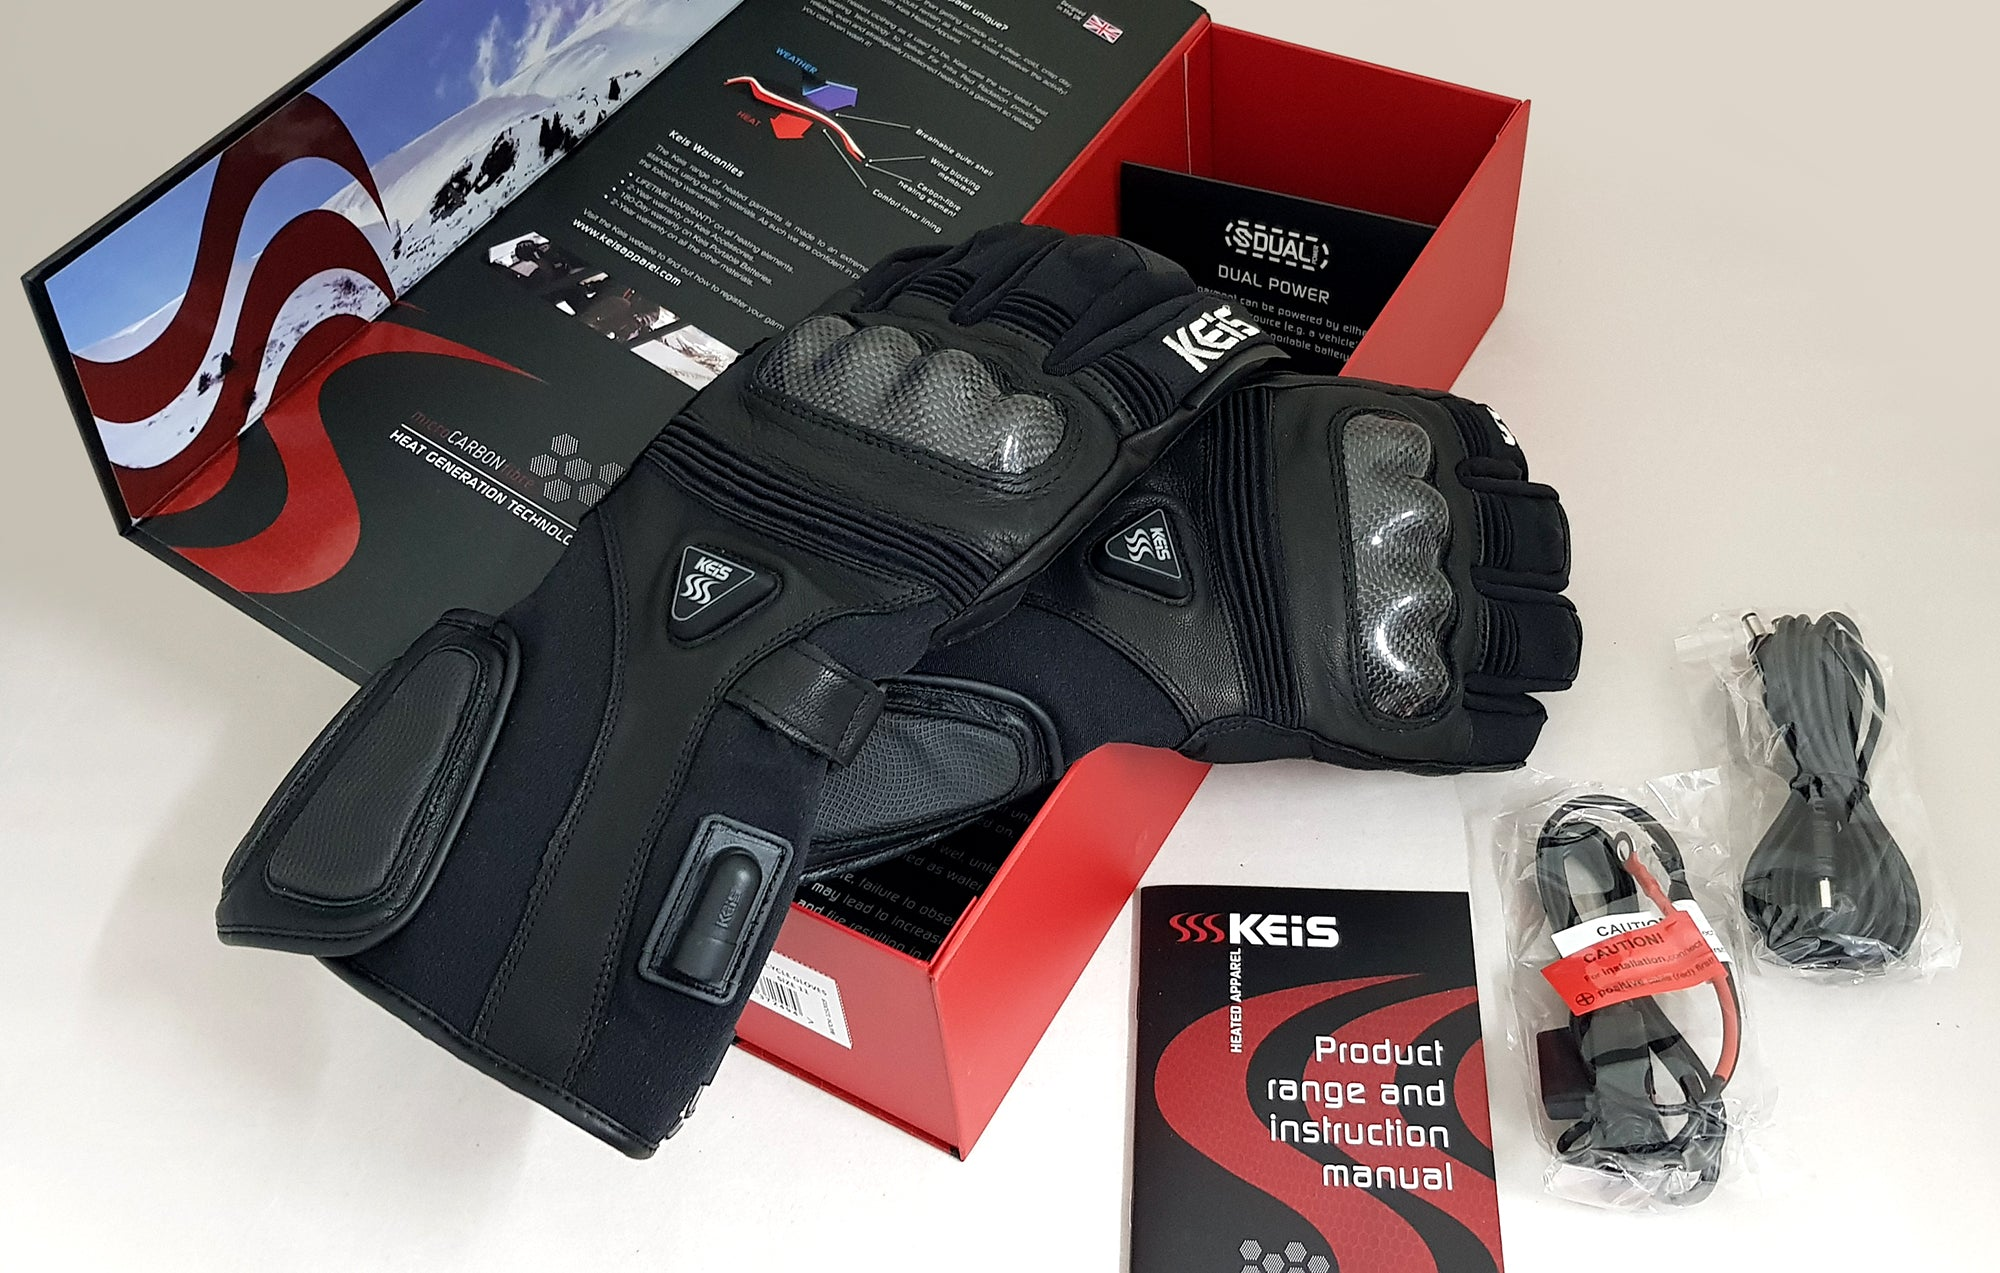 Box of G502 heated motorcycle gloves